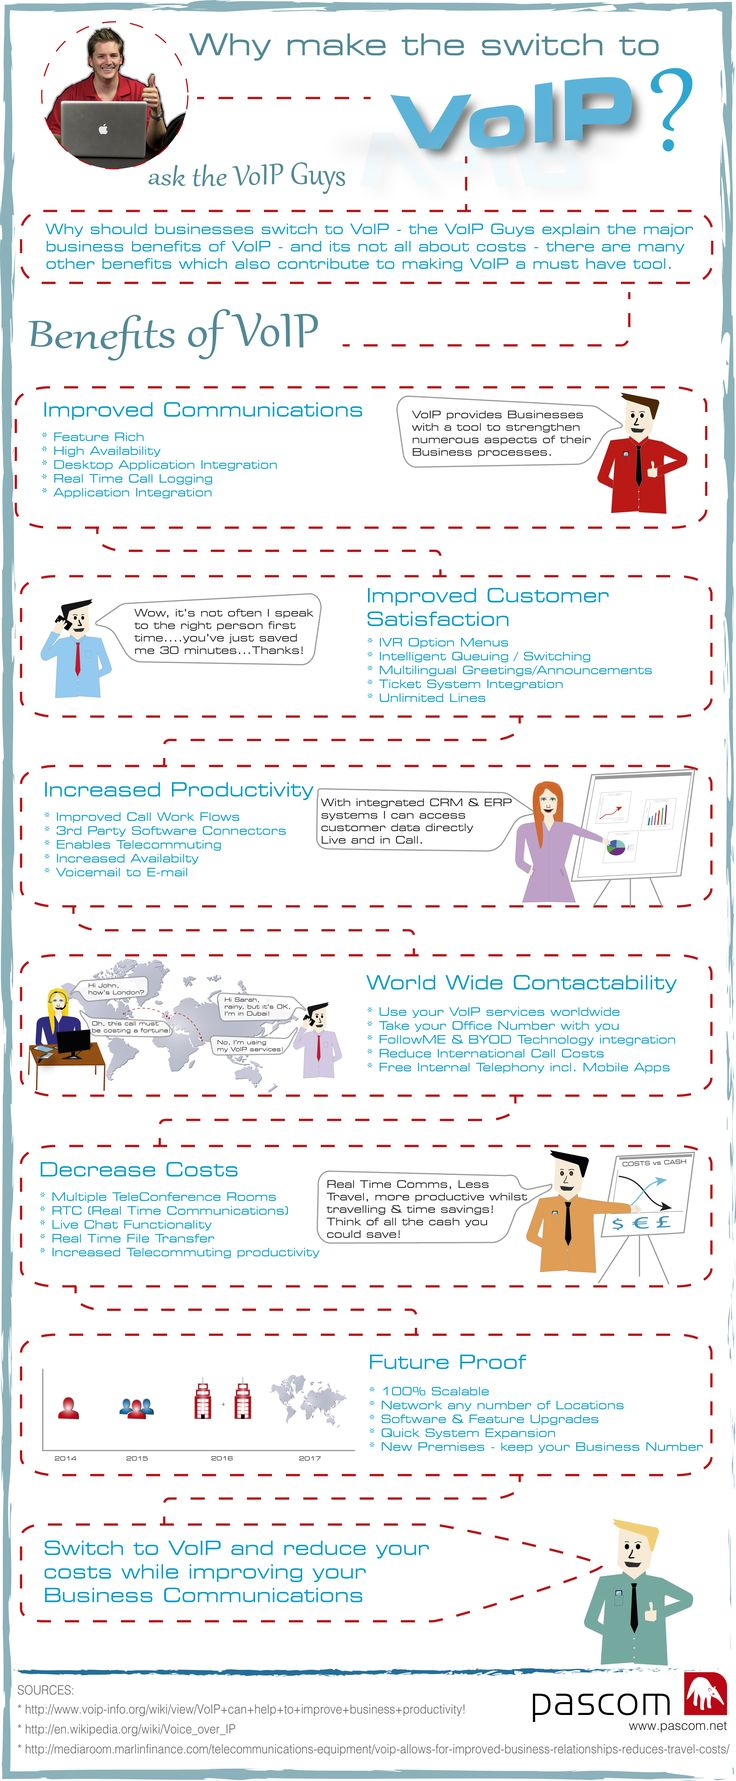 16 best up telecom images on pinterest infographic info graphics how can voip benefit businesses what are the advantages of using voice over ip fandeluxe Choice Image